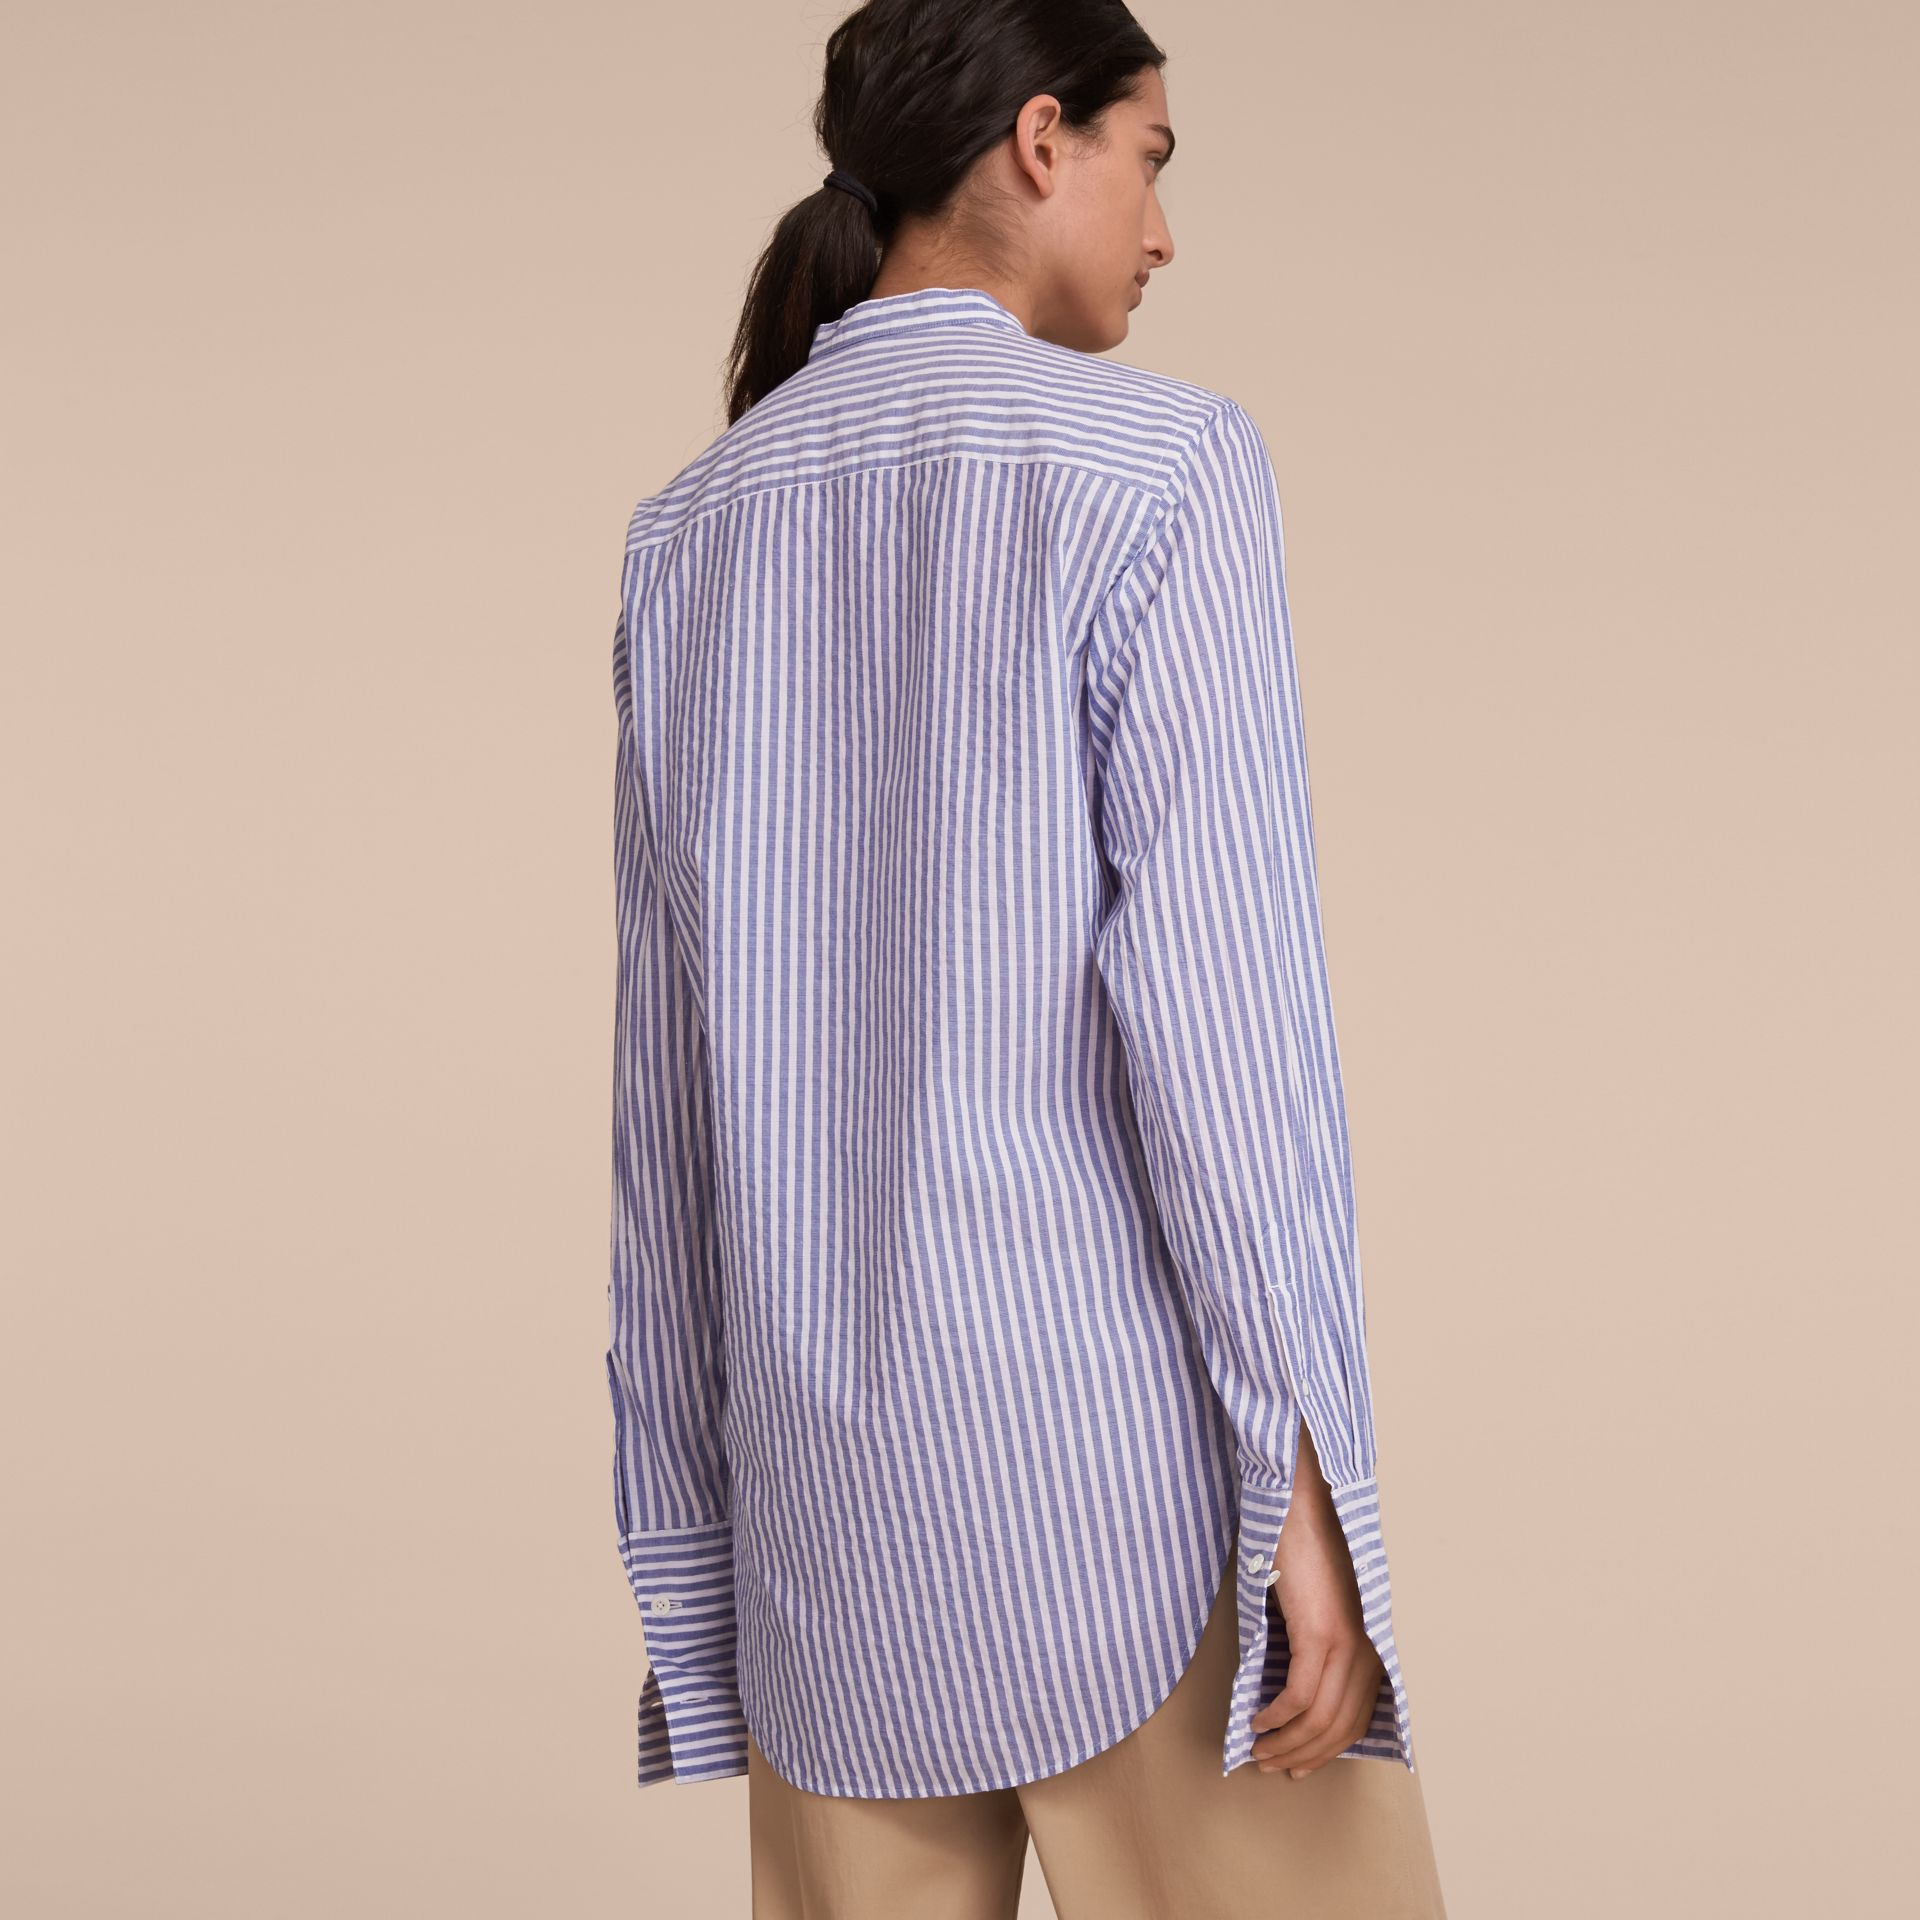 Unisex Grandad Collar Pleated Bib Striped Cotton Shirt in Pale Blue/white - Women | Burberry United Kingdom - gallery image 6